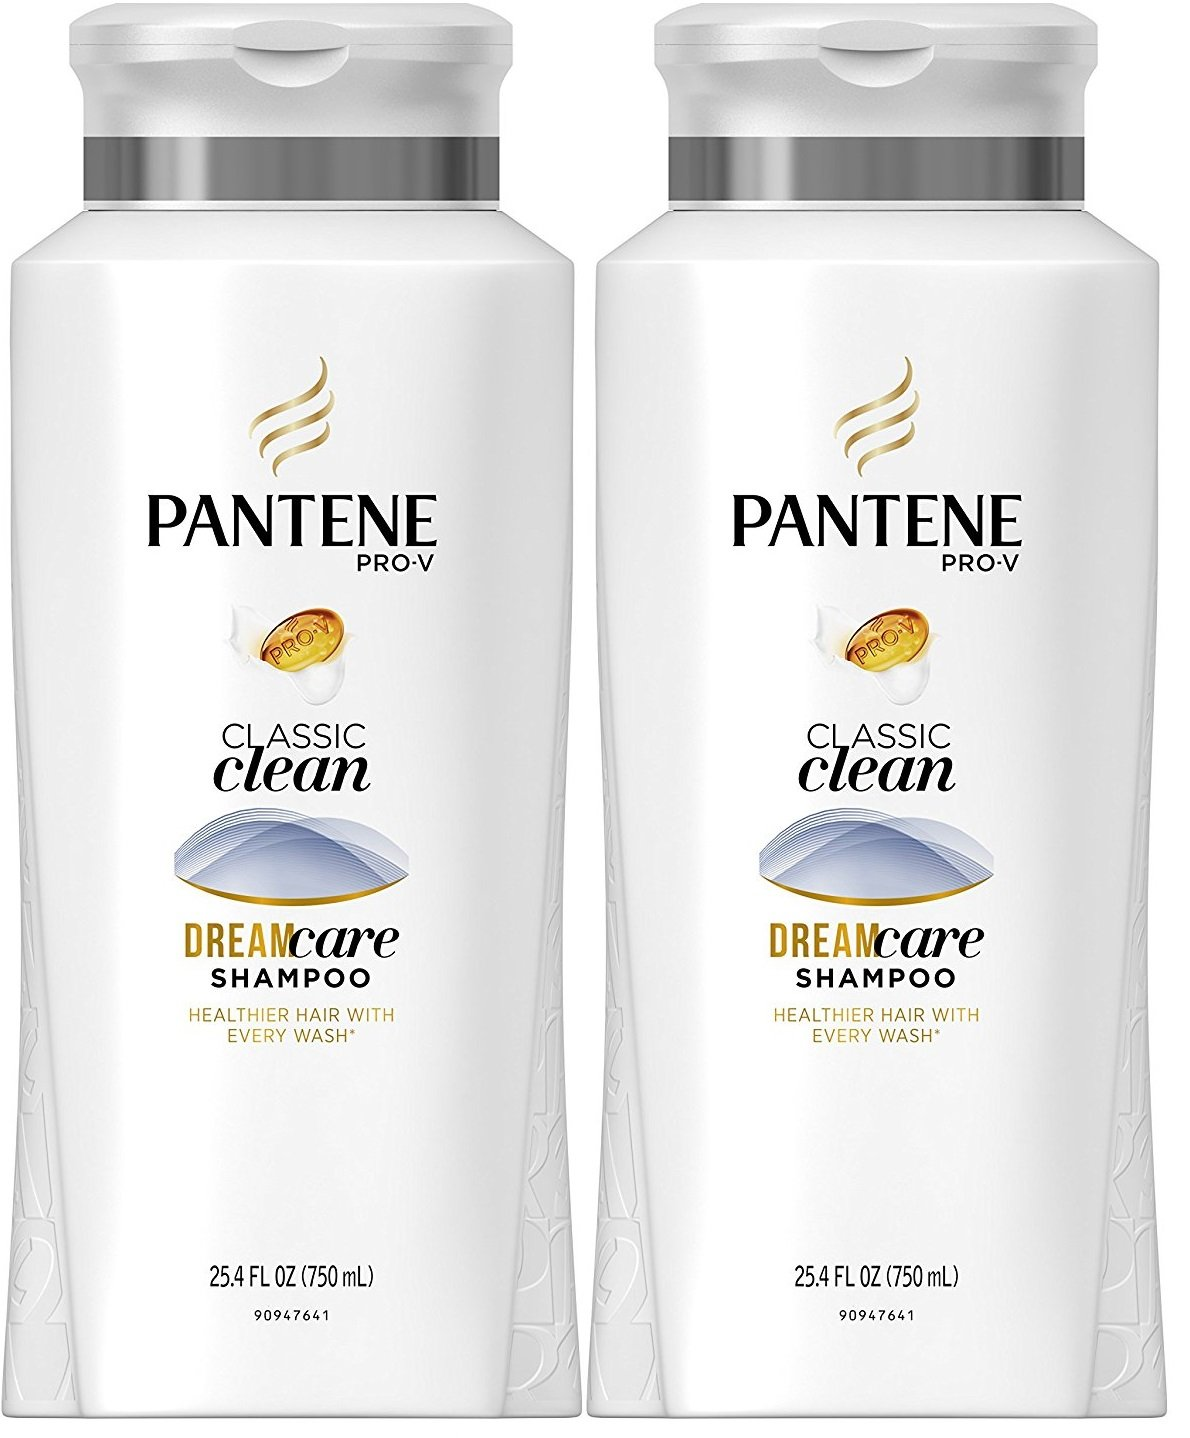 Pantene Pro-V Classic Clean Daily Shampoo 25.4 Fl Oz (Pack of 2)